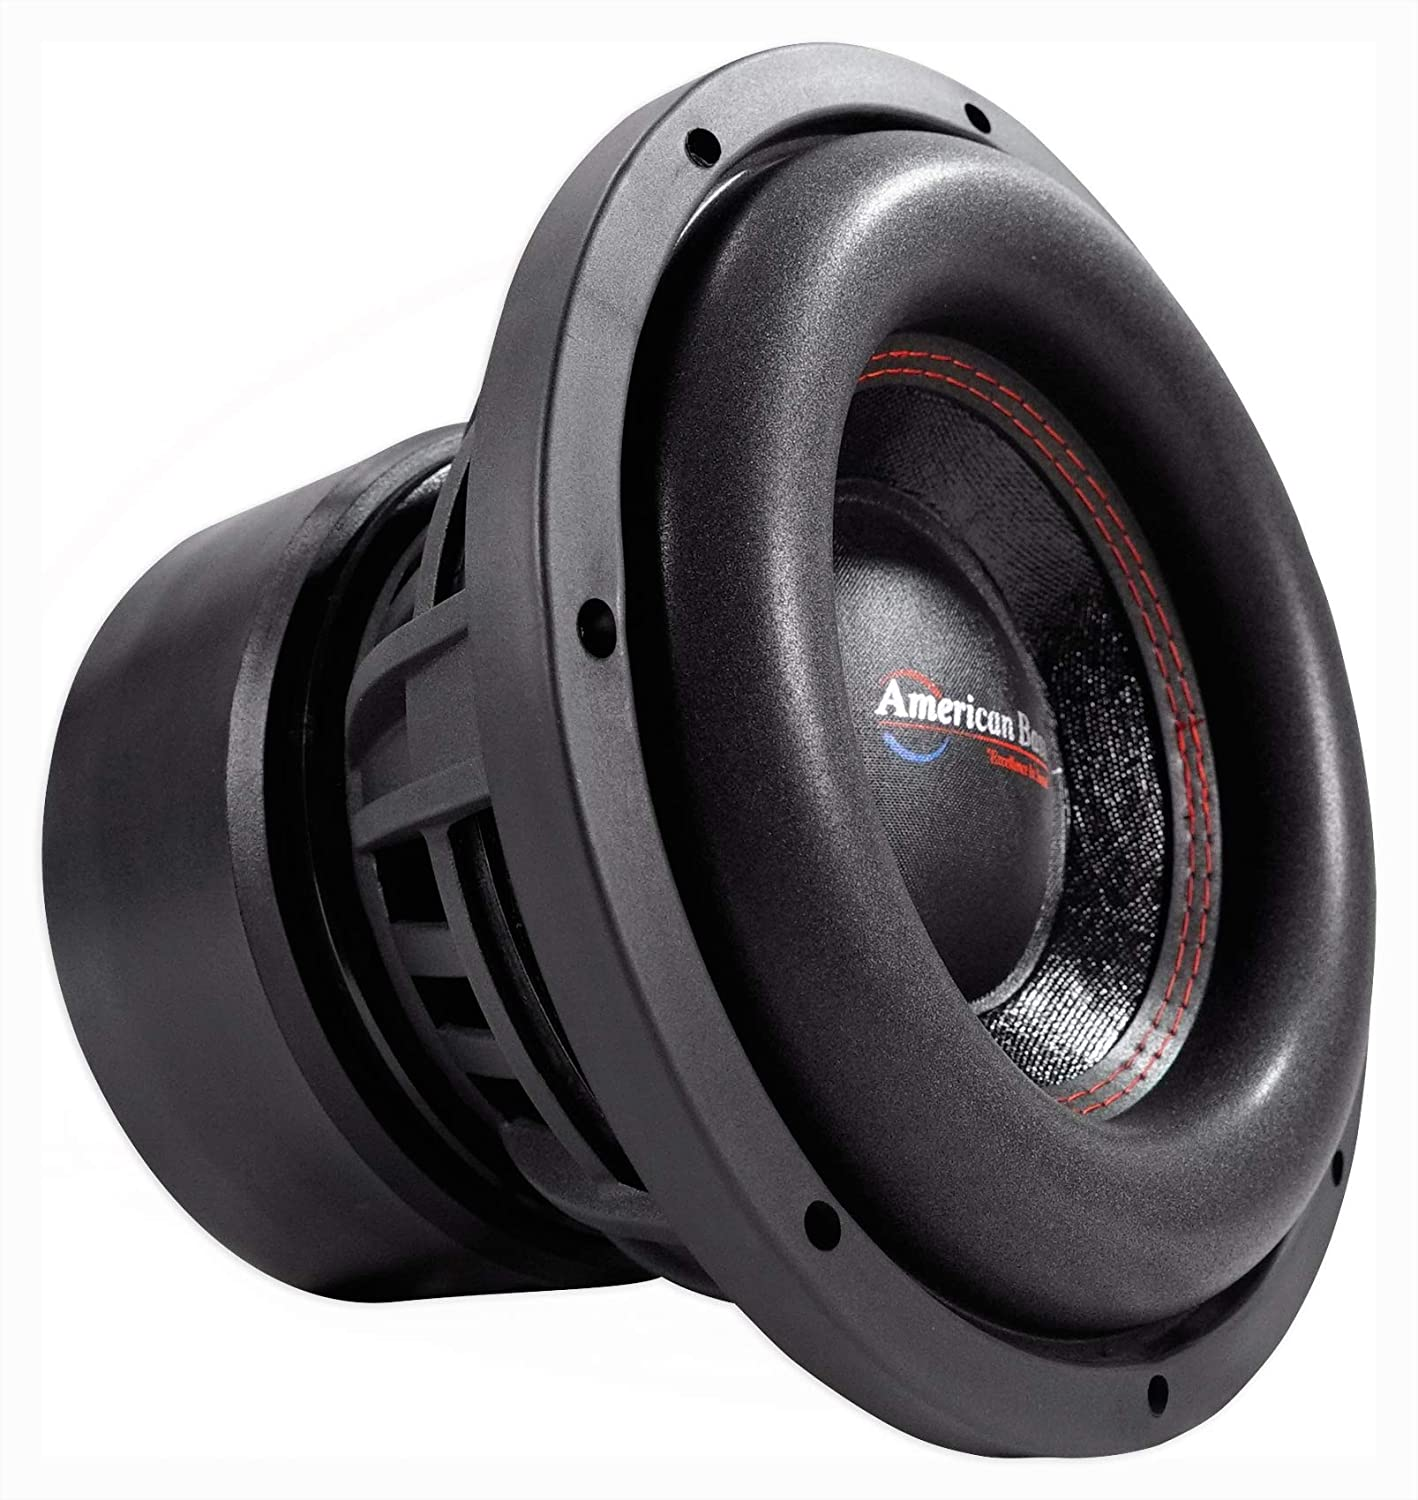 New American Bass Xfl1022 10 2000 Watt Subwoofer Car Audio Sub 10 Inch 2000W